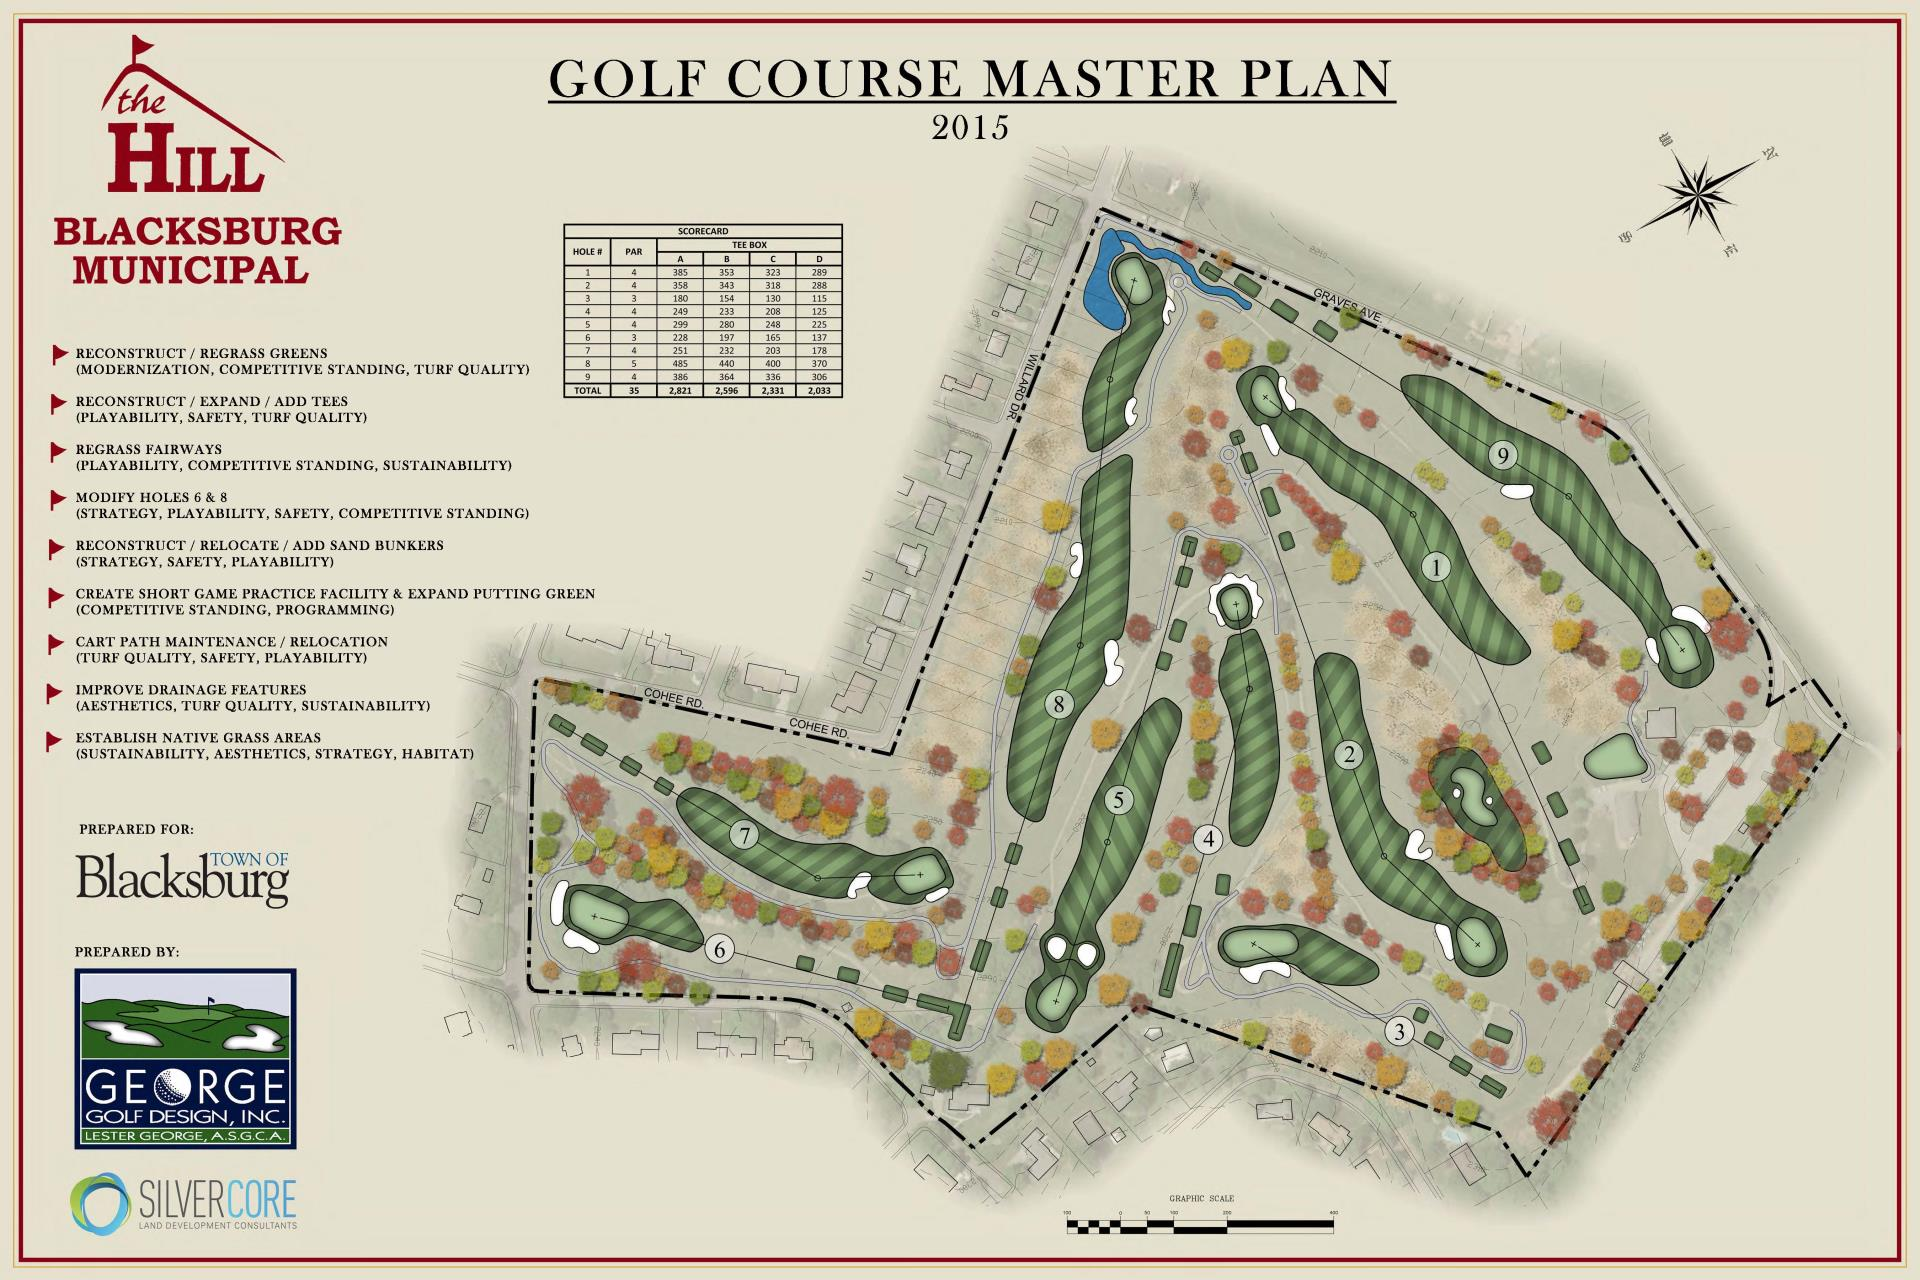 Master Plan from 2015 of the Blacksburg Municipal Golf course